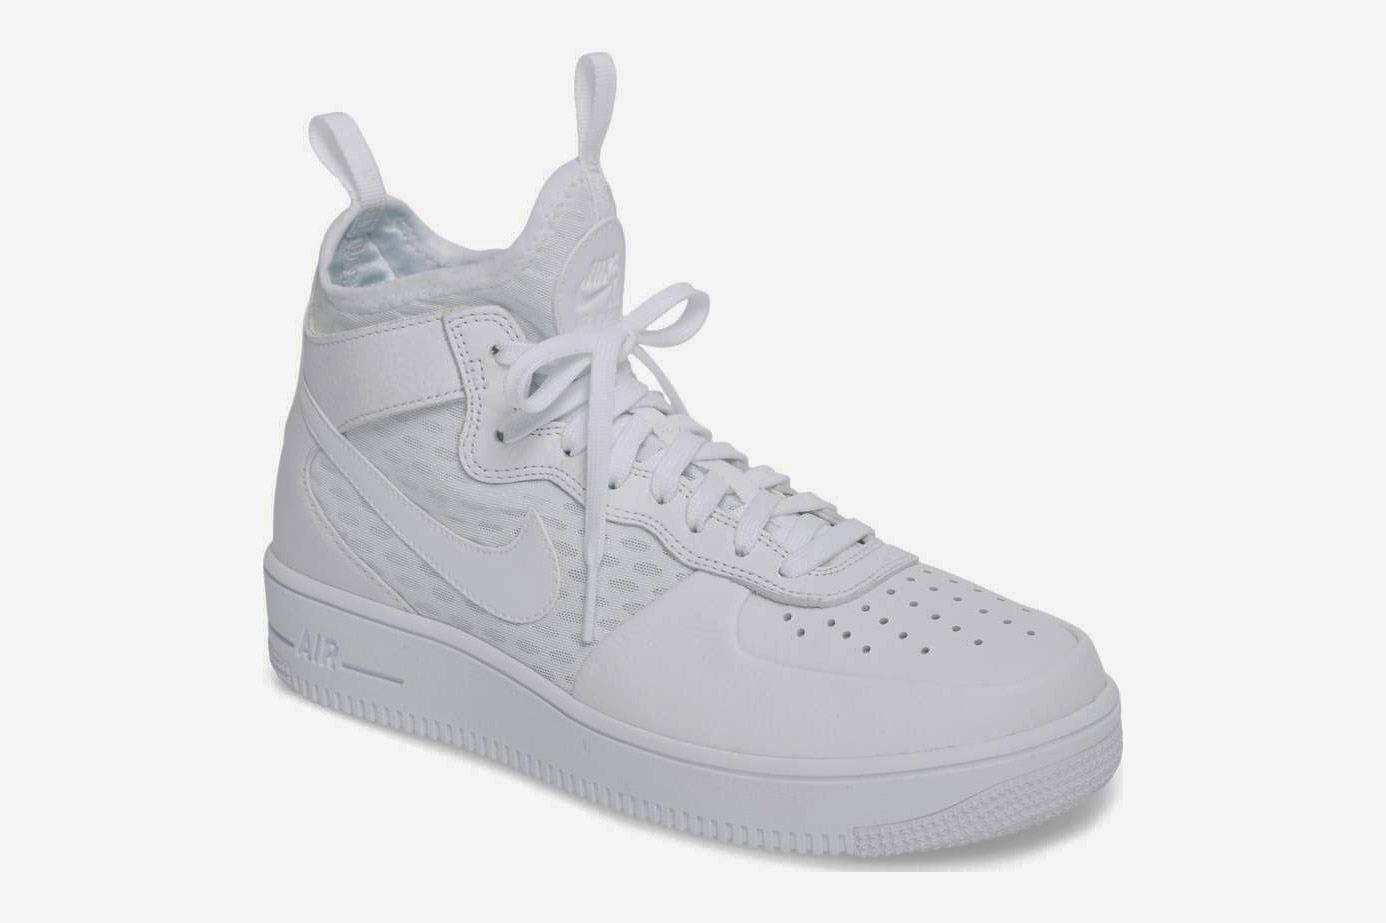 Nike Air Force 1 Ultraforce Mid Sneaker